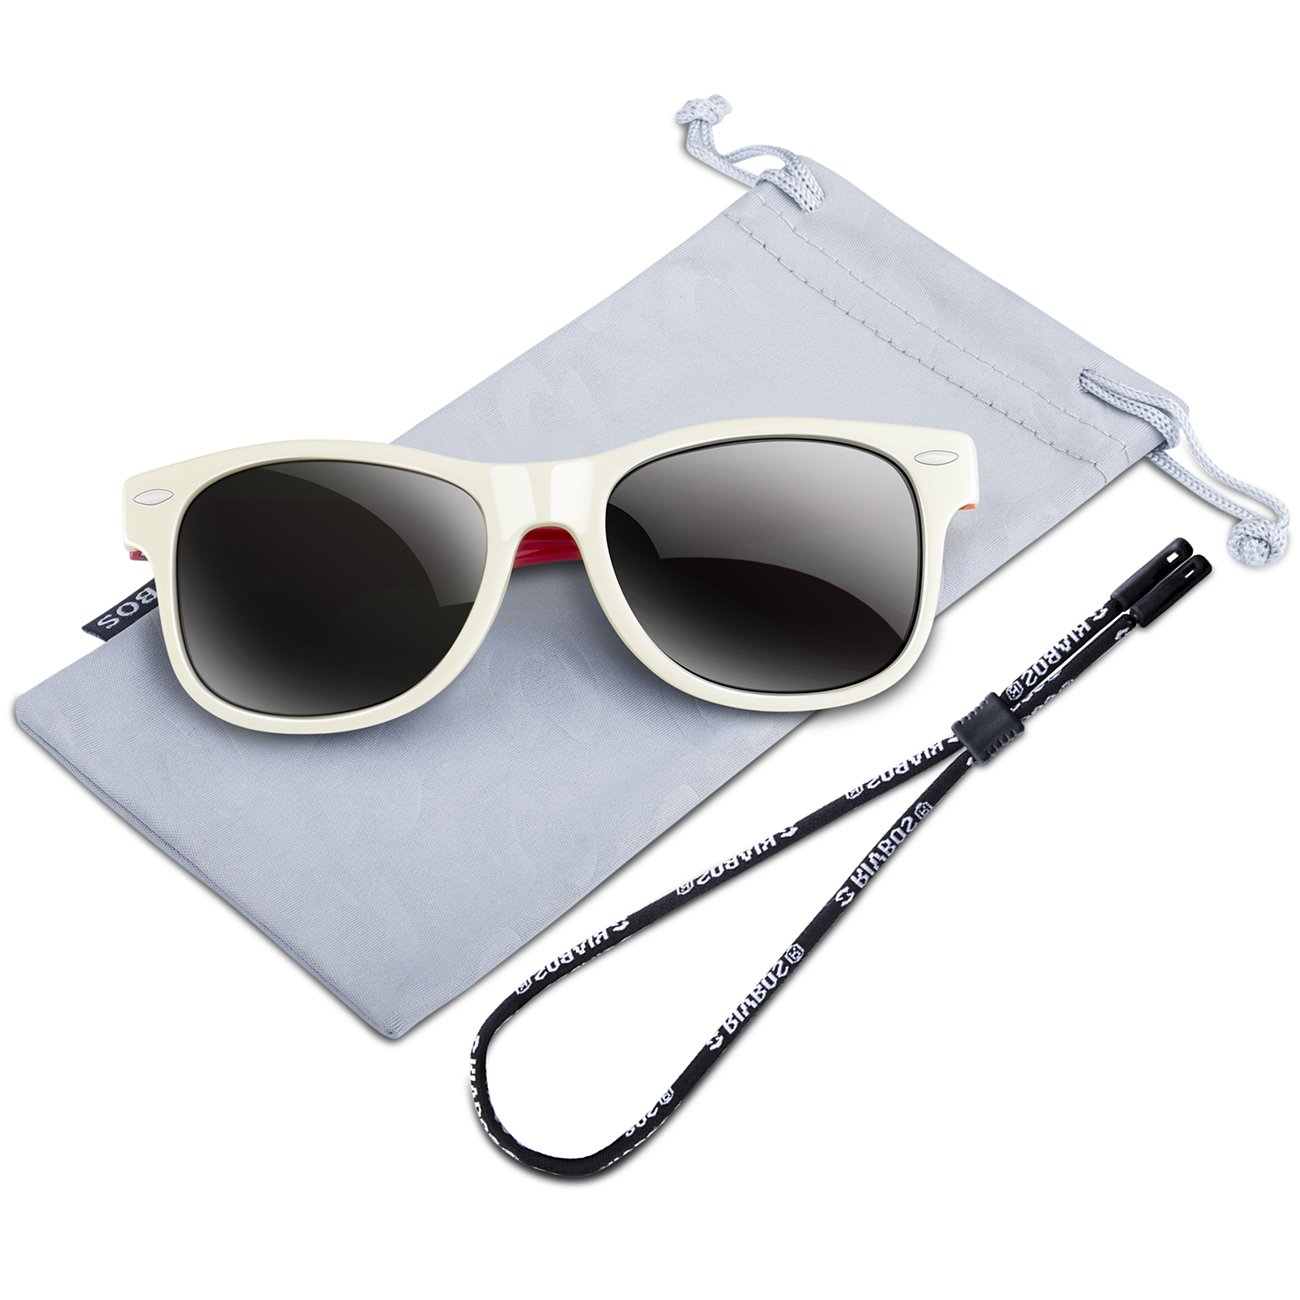 a0aa4d4a4c RIVBOS Rubber Kids Polarized Sunglasses With Strap Glasses for Boys Girls  Baby and Children Age 3-10 RBK004